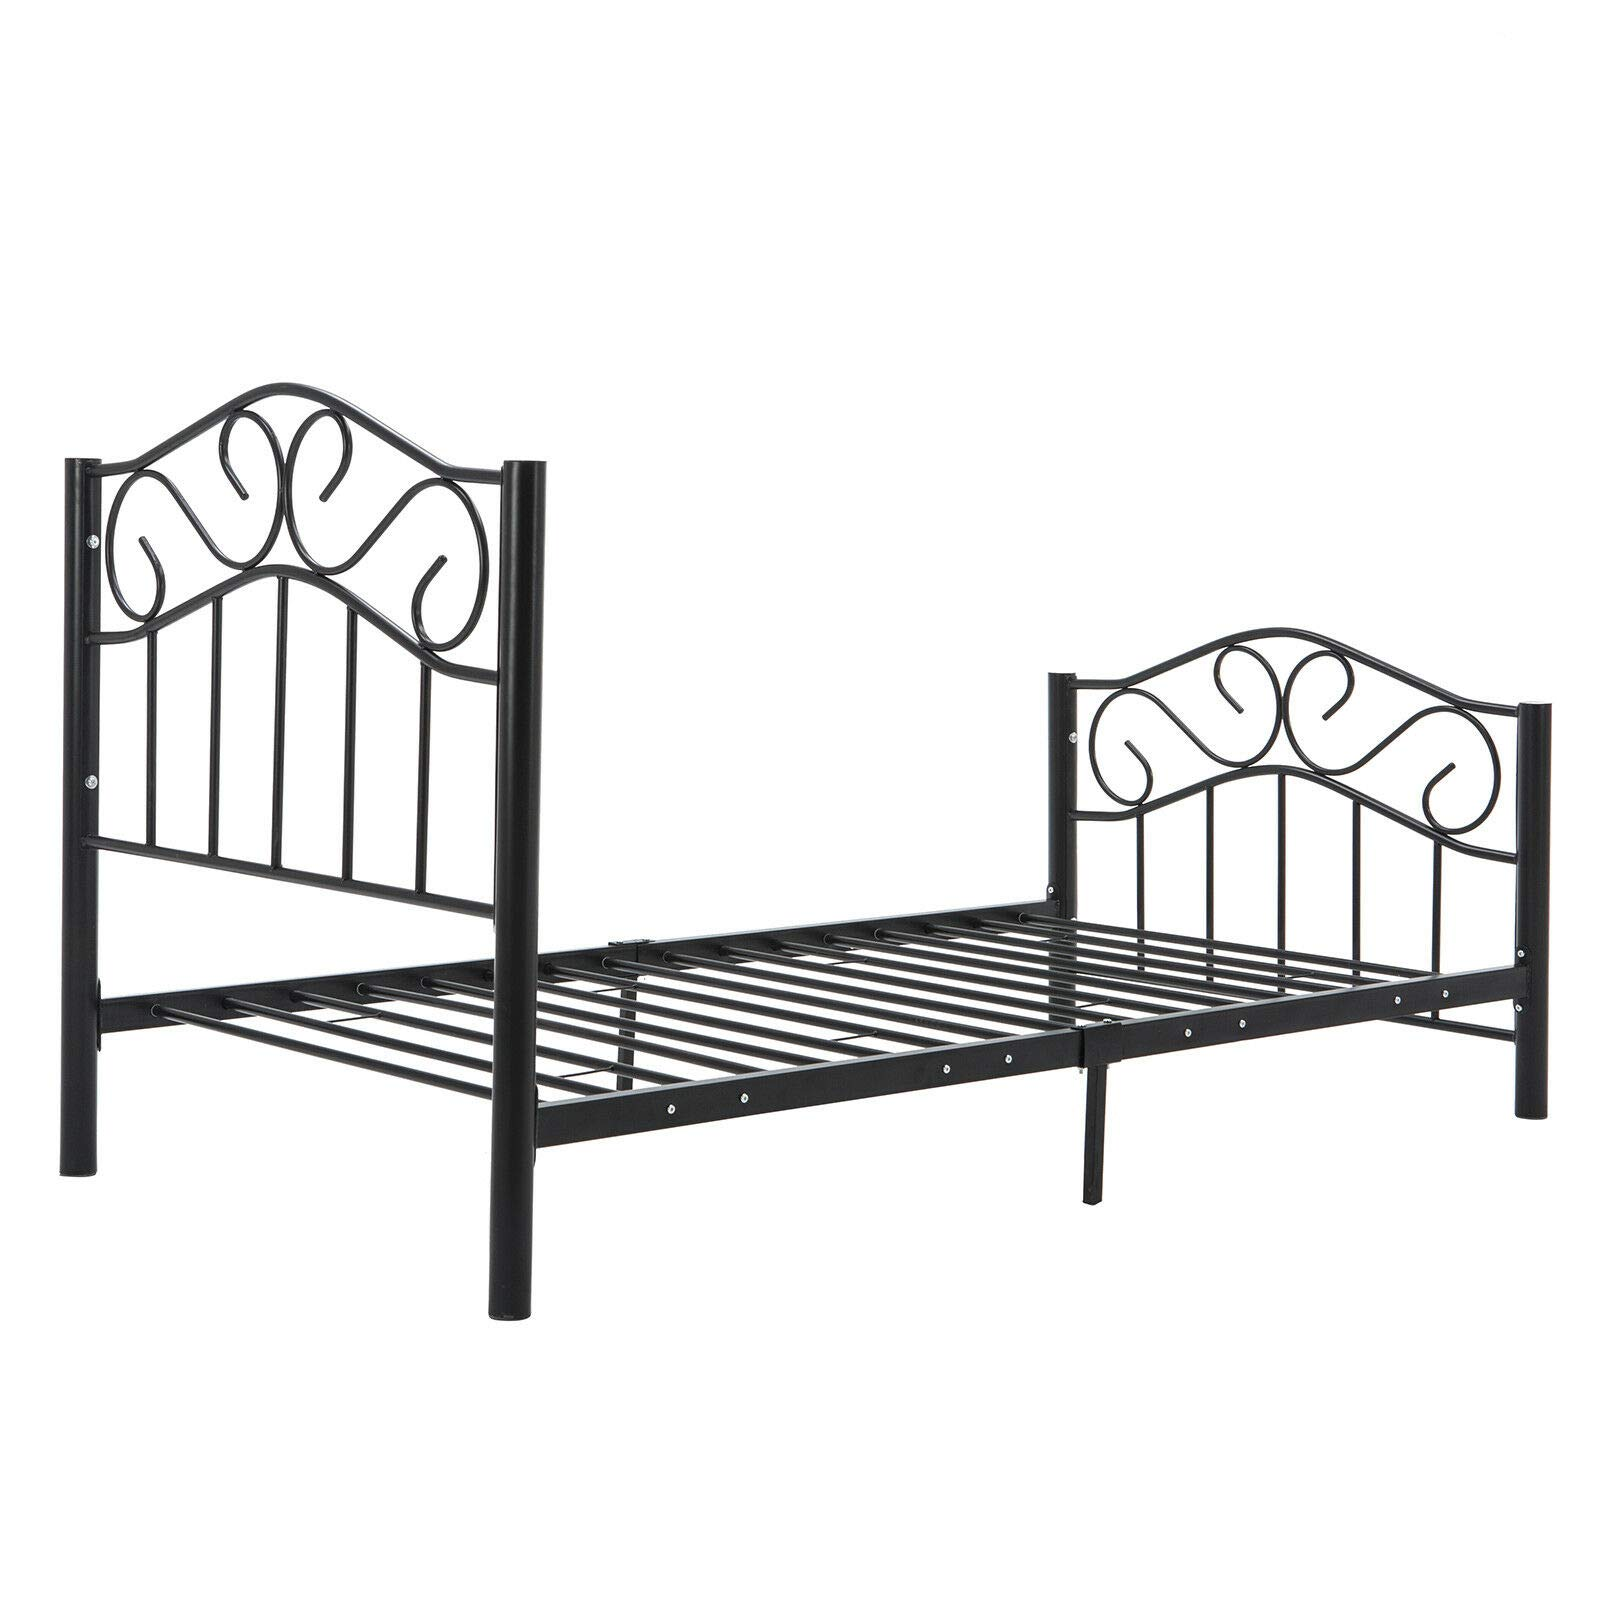 32e-SANERYI Bed Frame Twin Size, Stable Metal Frame with 6 Legs 2 Headboards,Under-Bed Storage,Enhanced Sturdy Slats(Black)